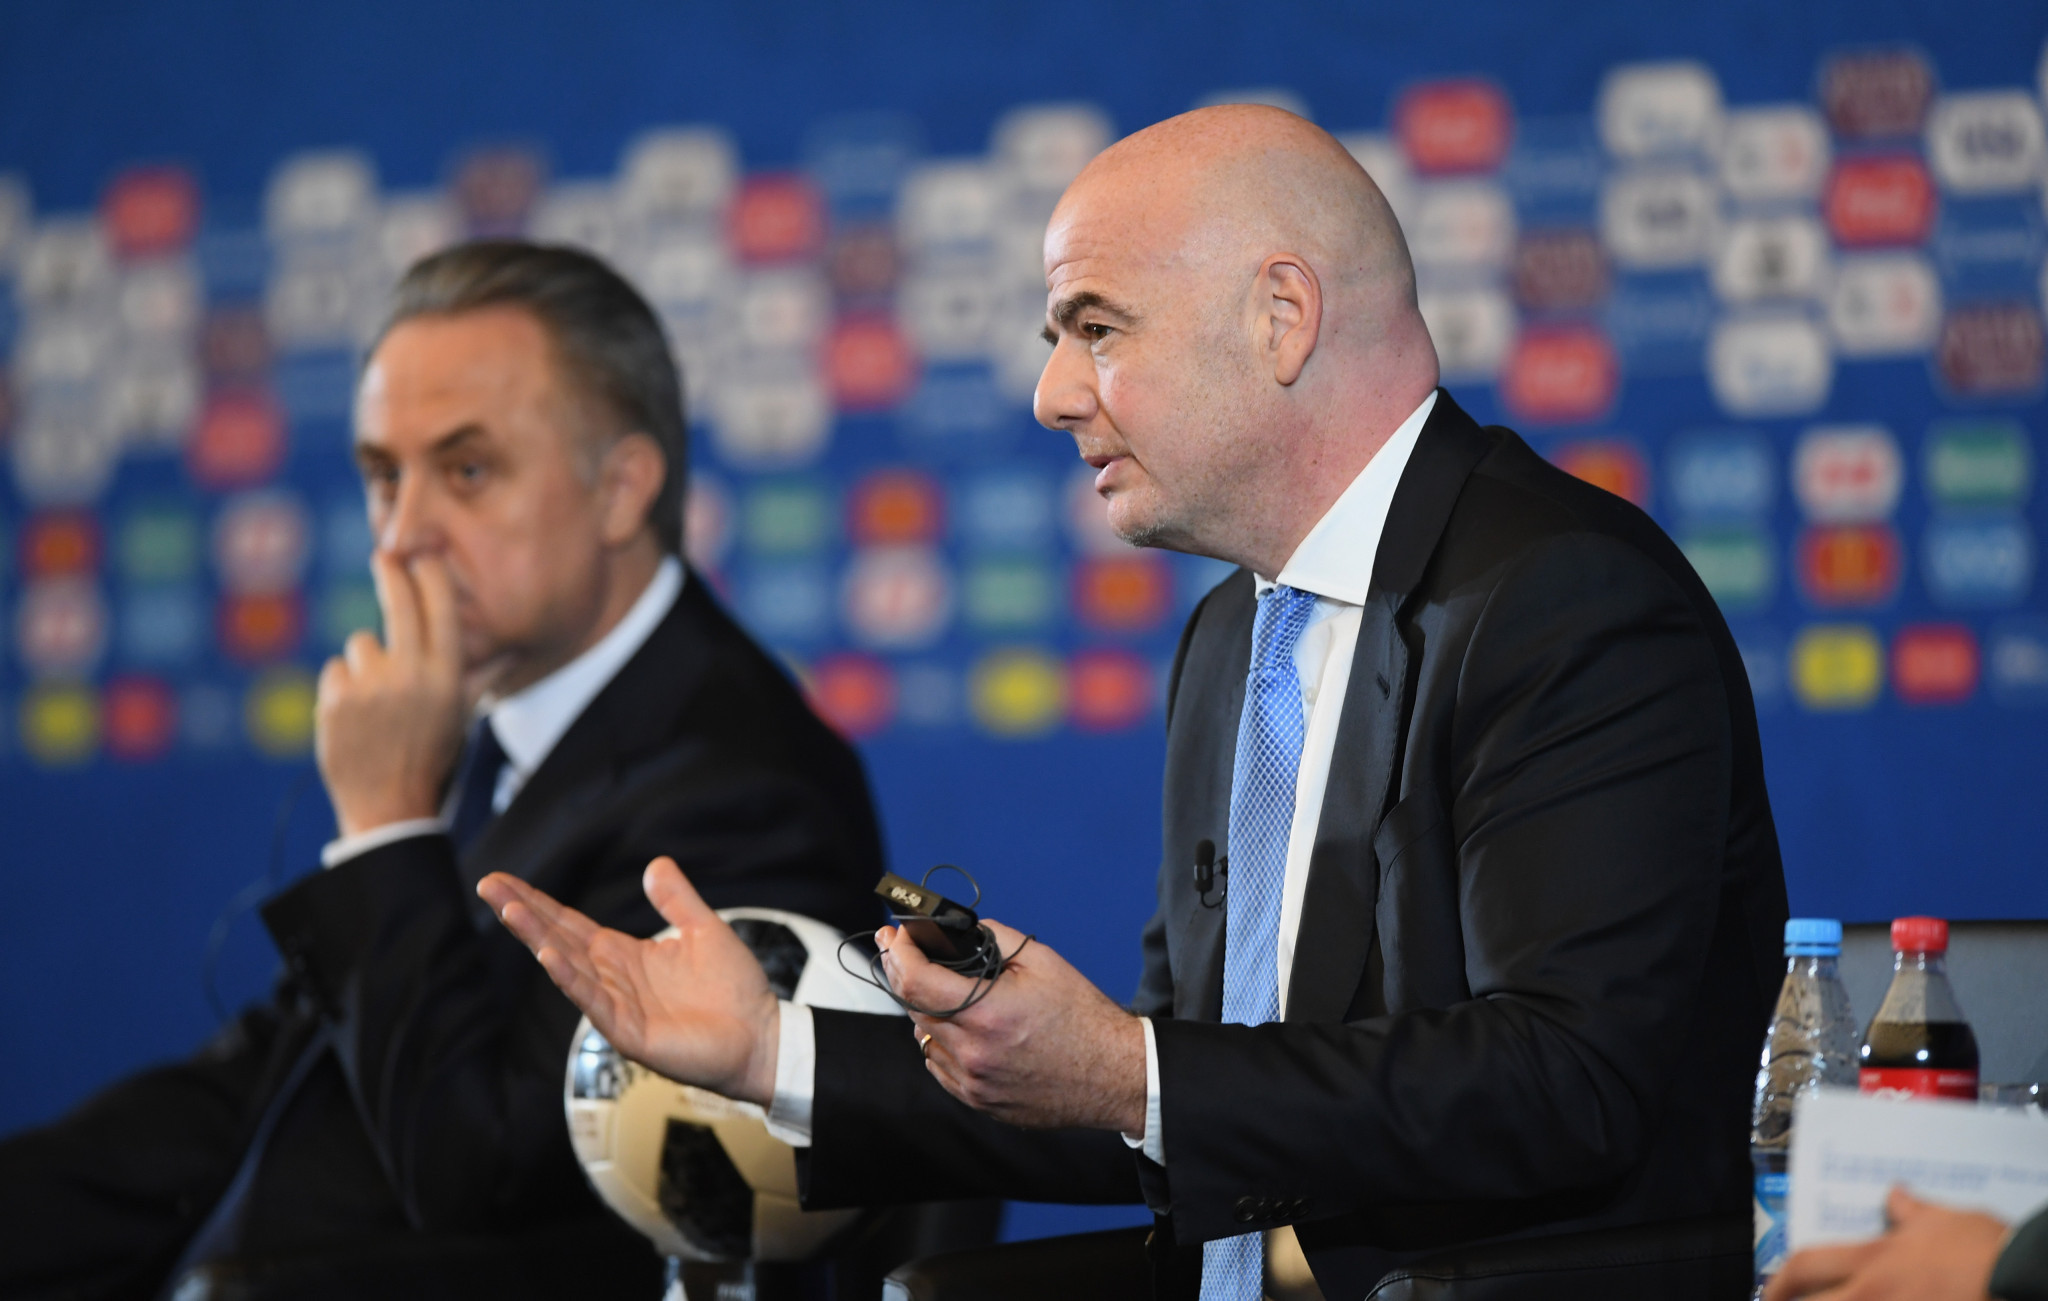 Russia's Deputy Prime Minister Vitaly Mutko was speaking alongside FIFA President Gianni Infantino at a press conference prior to the draw for today's 2018 FIFA World Cup ©Getty Images